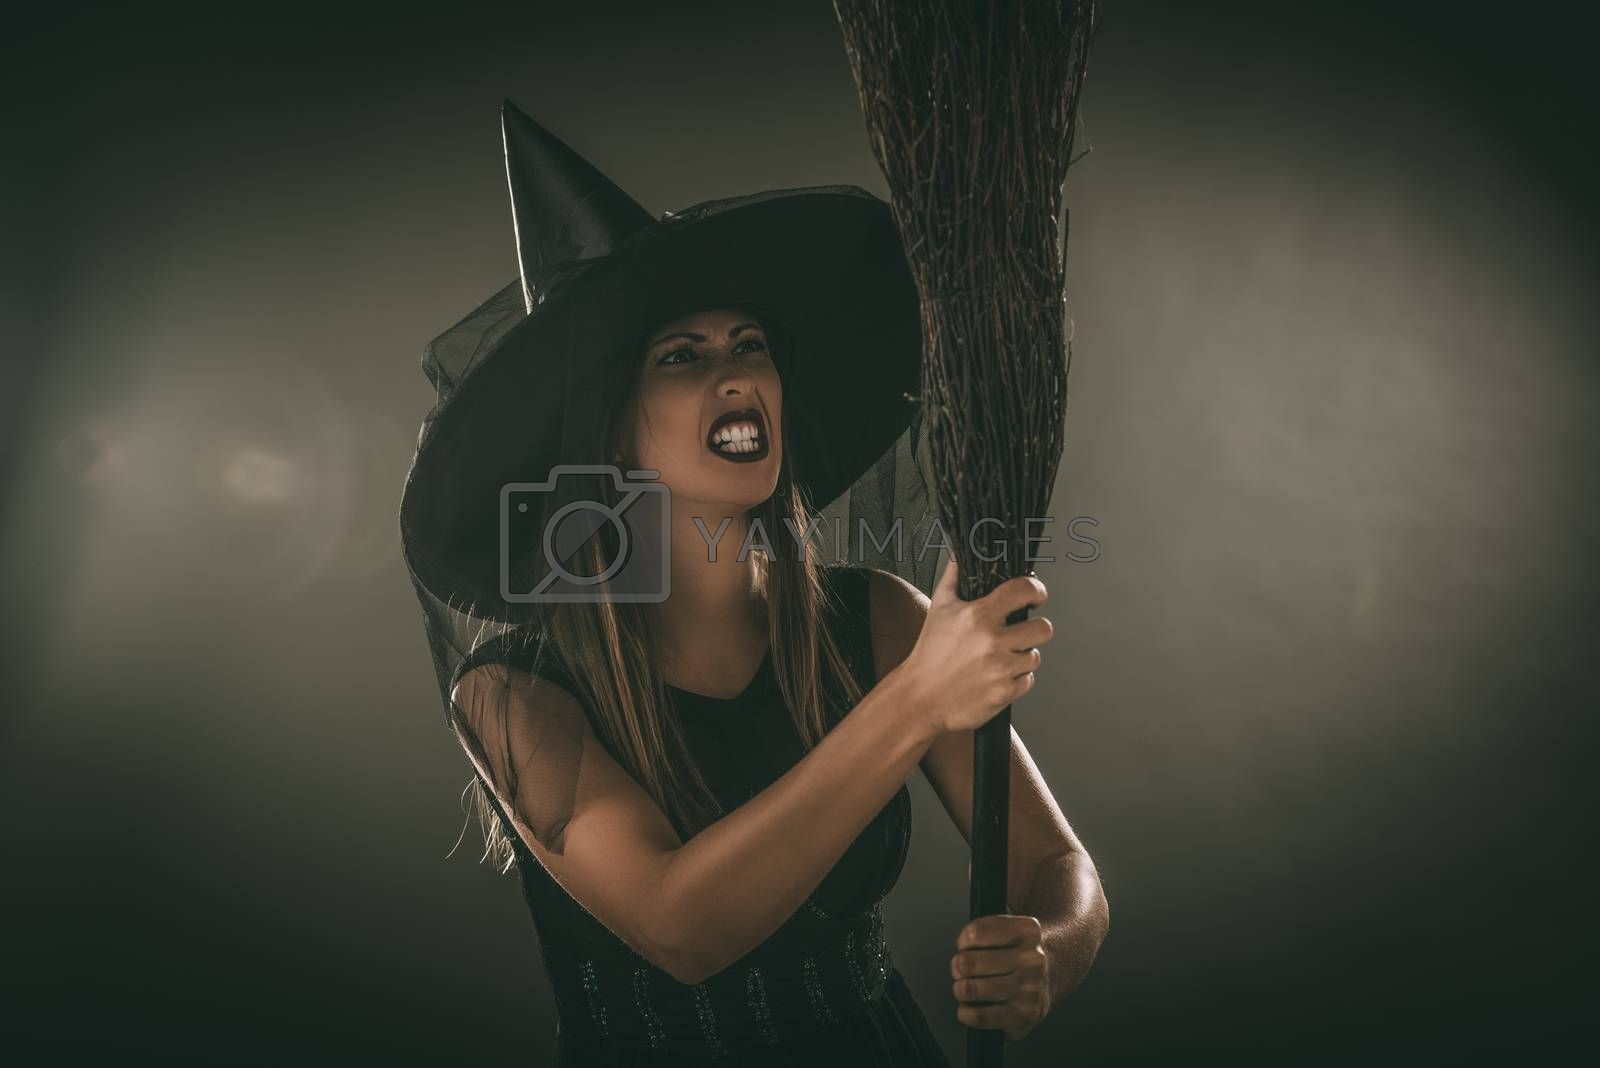 Young woman dressed like a witch. She is in dark clothing and holding a broom.